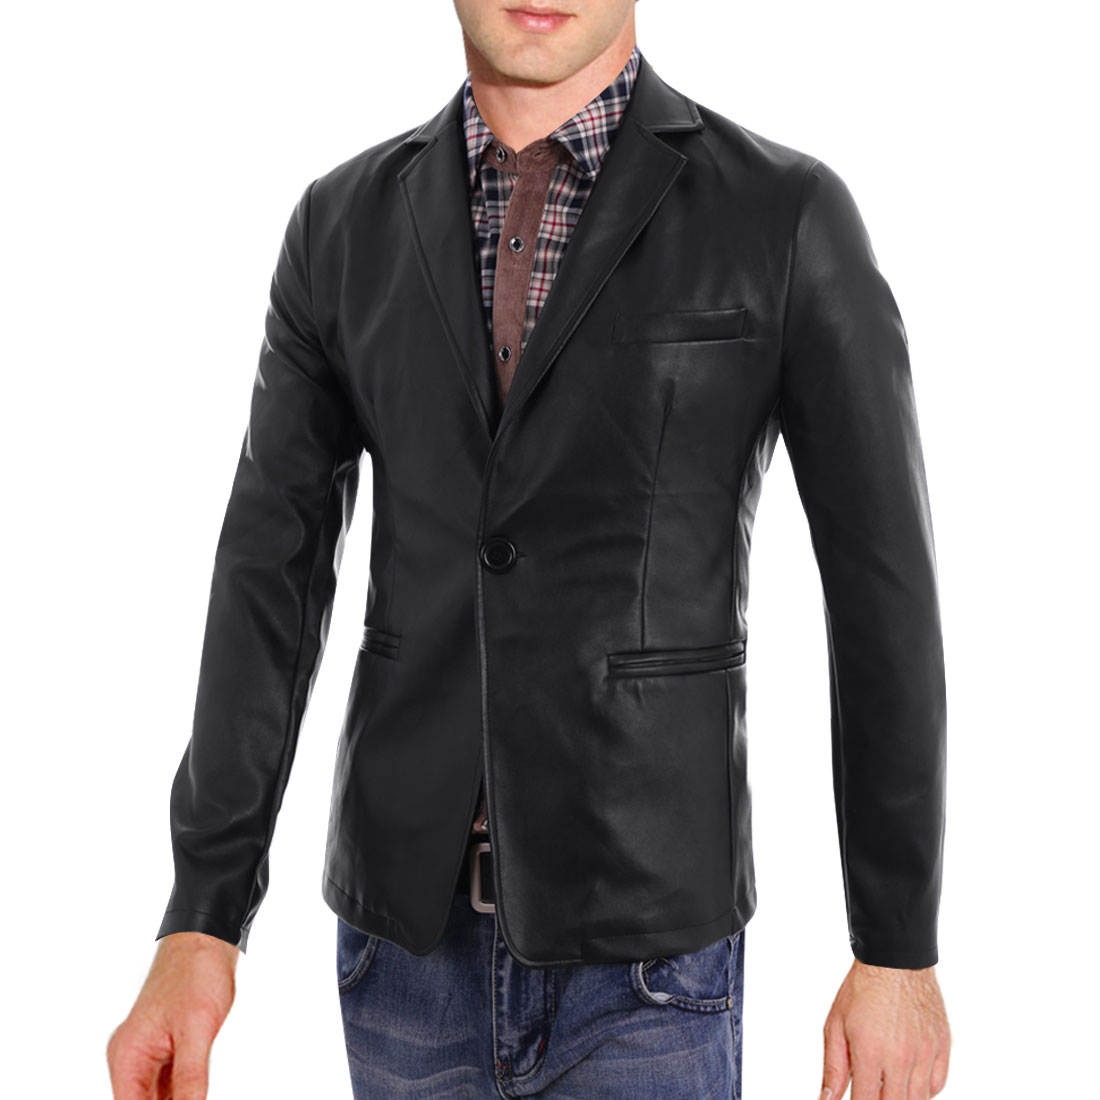 Men's Peaked Lapel One Button Long Sleeves Black M Leather Jacket Coat